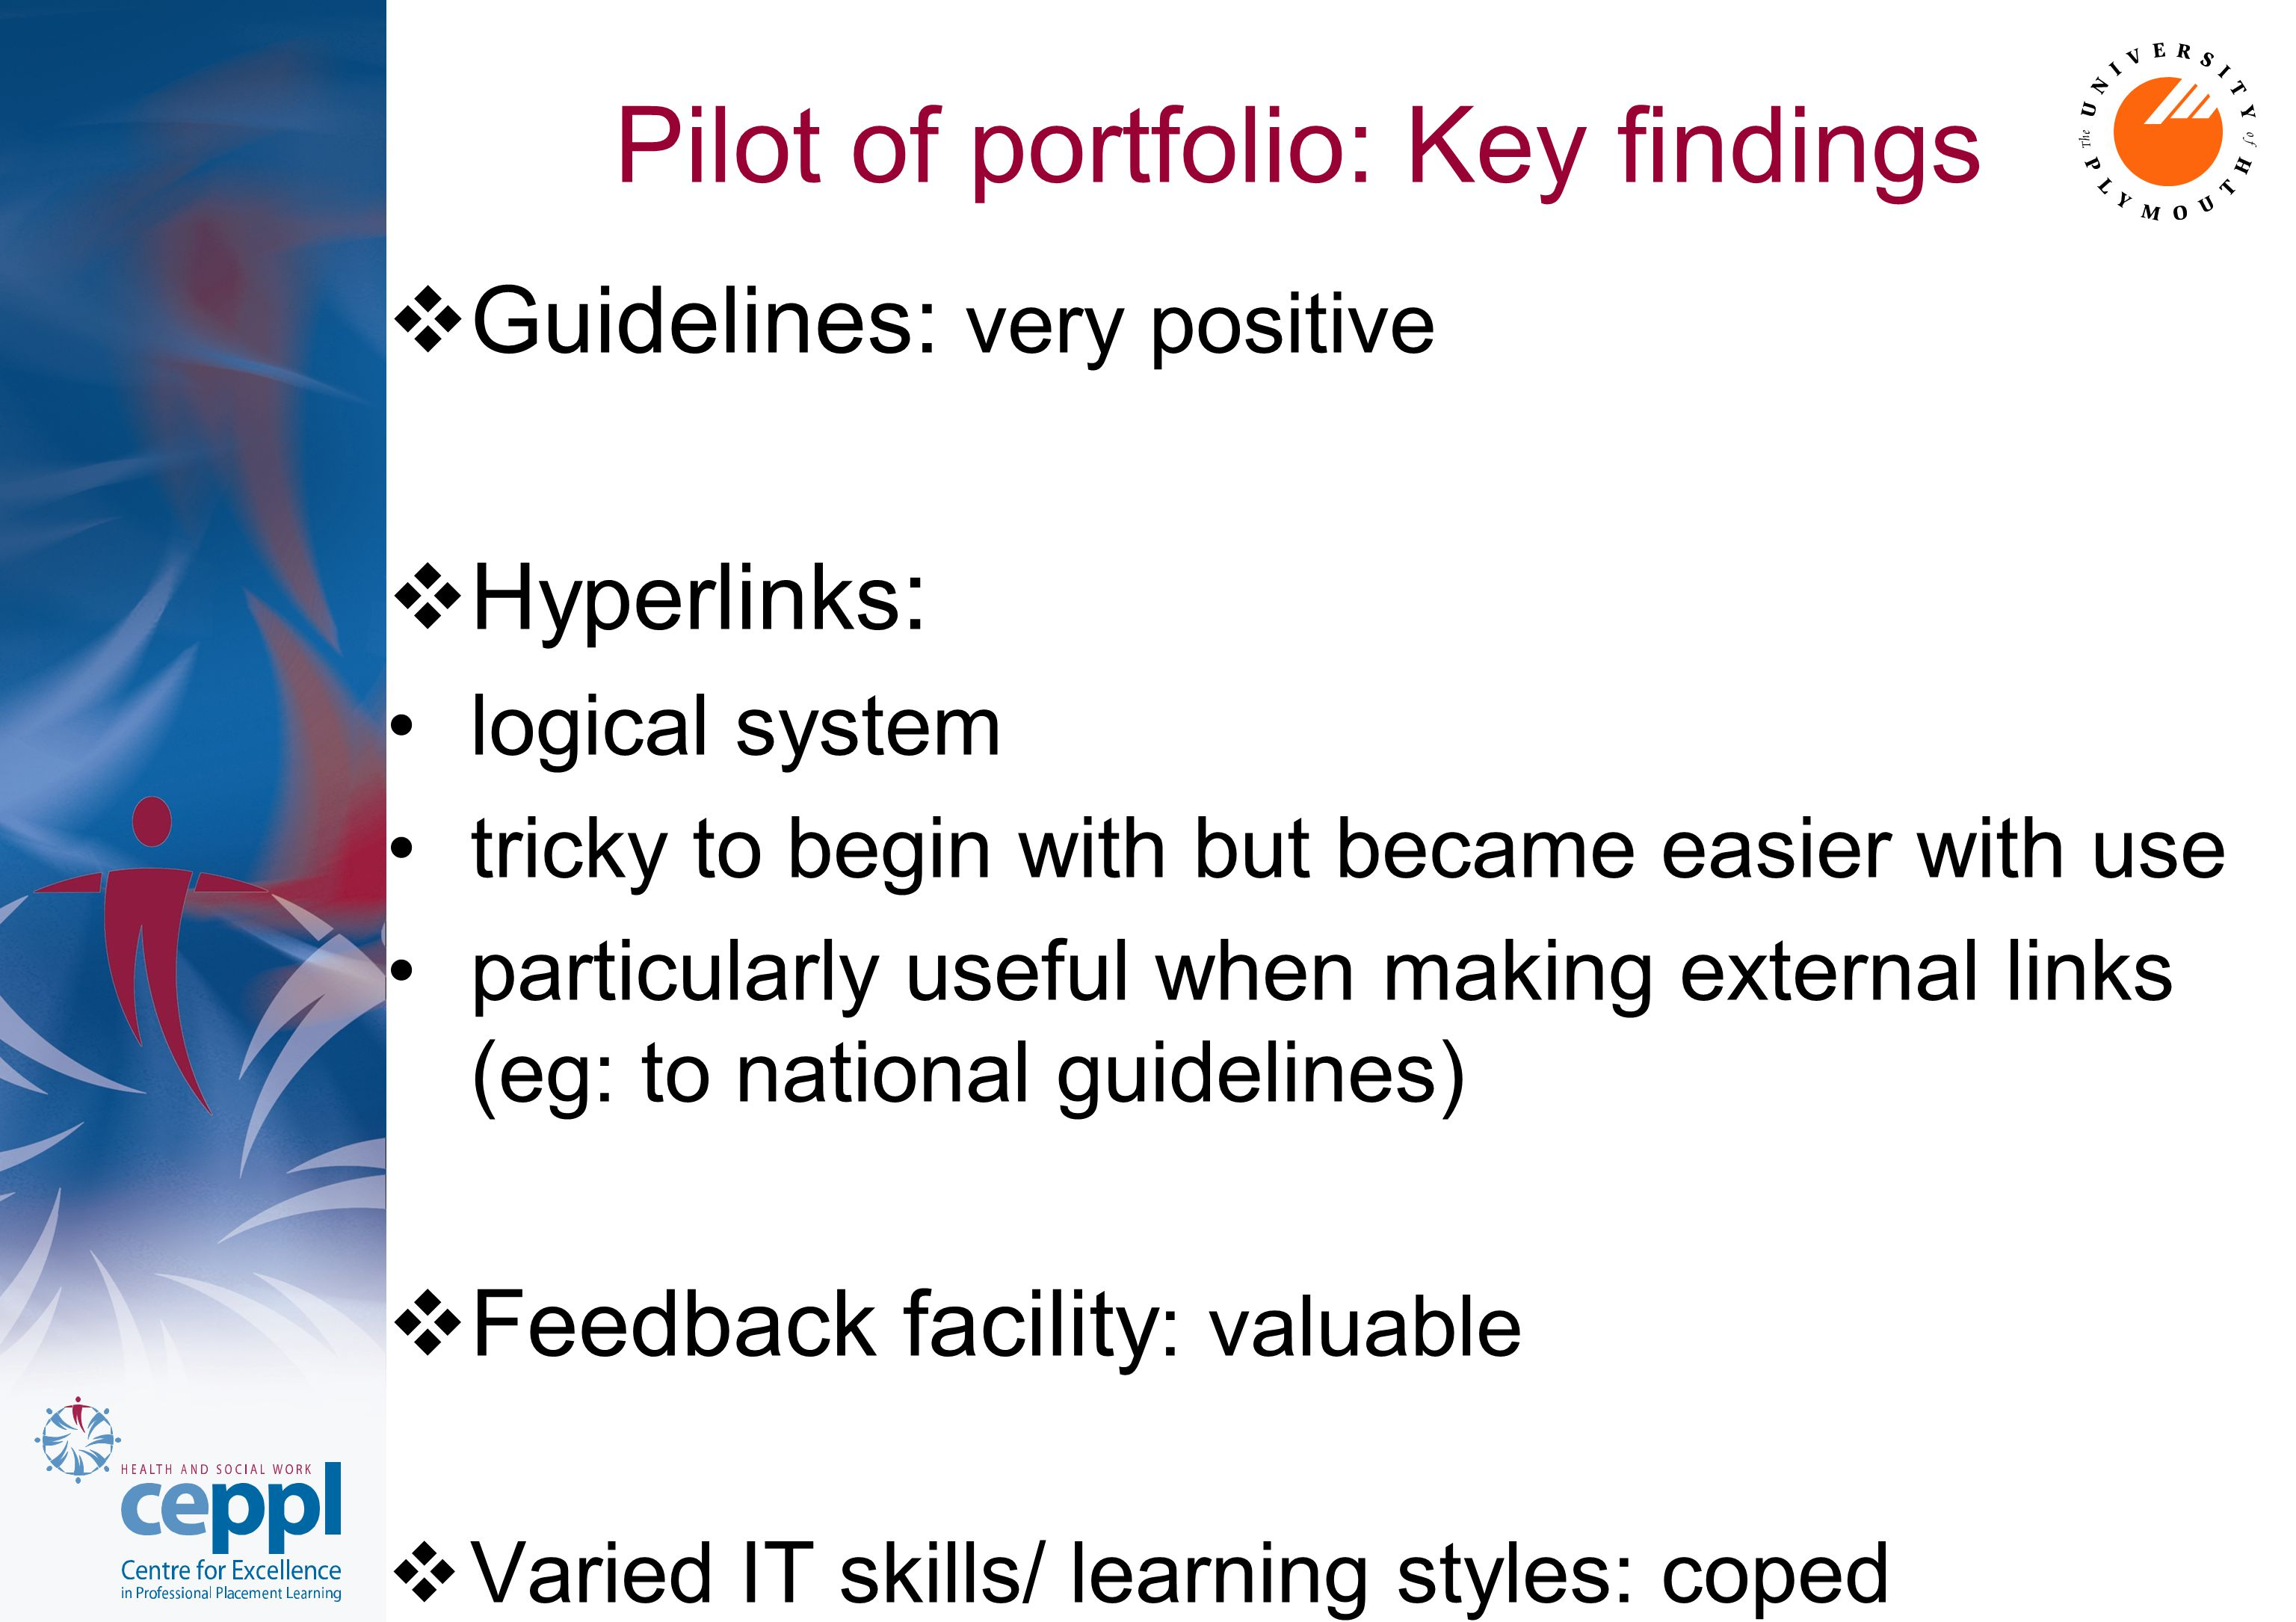 Pilot of portfolio: Key findings  Guidelines: very positive  Hyperlinks : logical system tricky to begin with but became easier with use particularly useful when making external links (eg: to national guidelines)  Feedback facility : valuable  Varied IT skills/ learning styles: coped